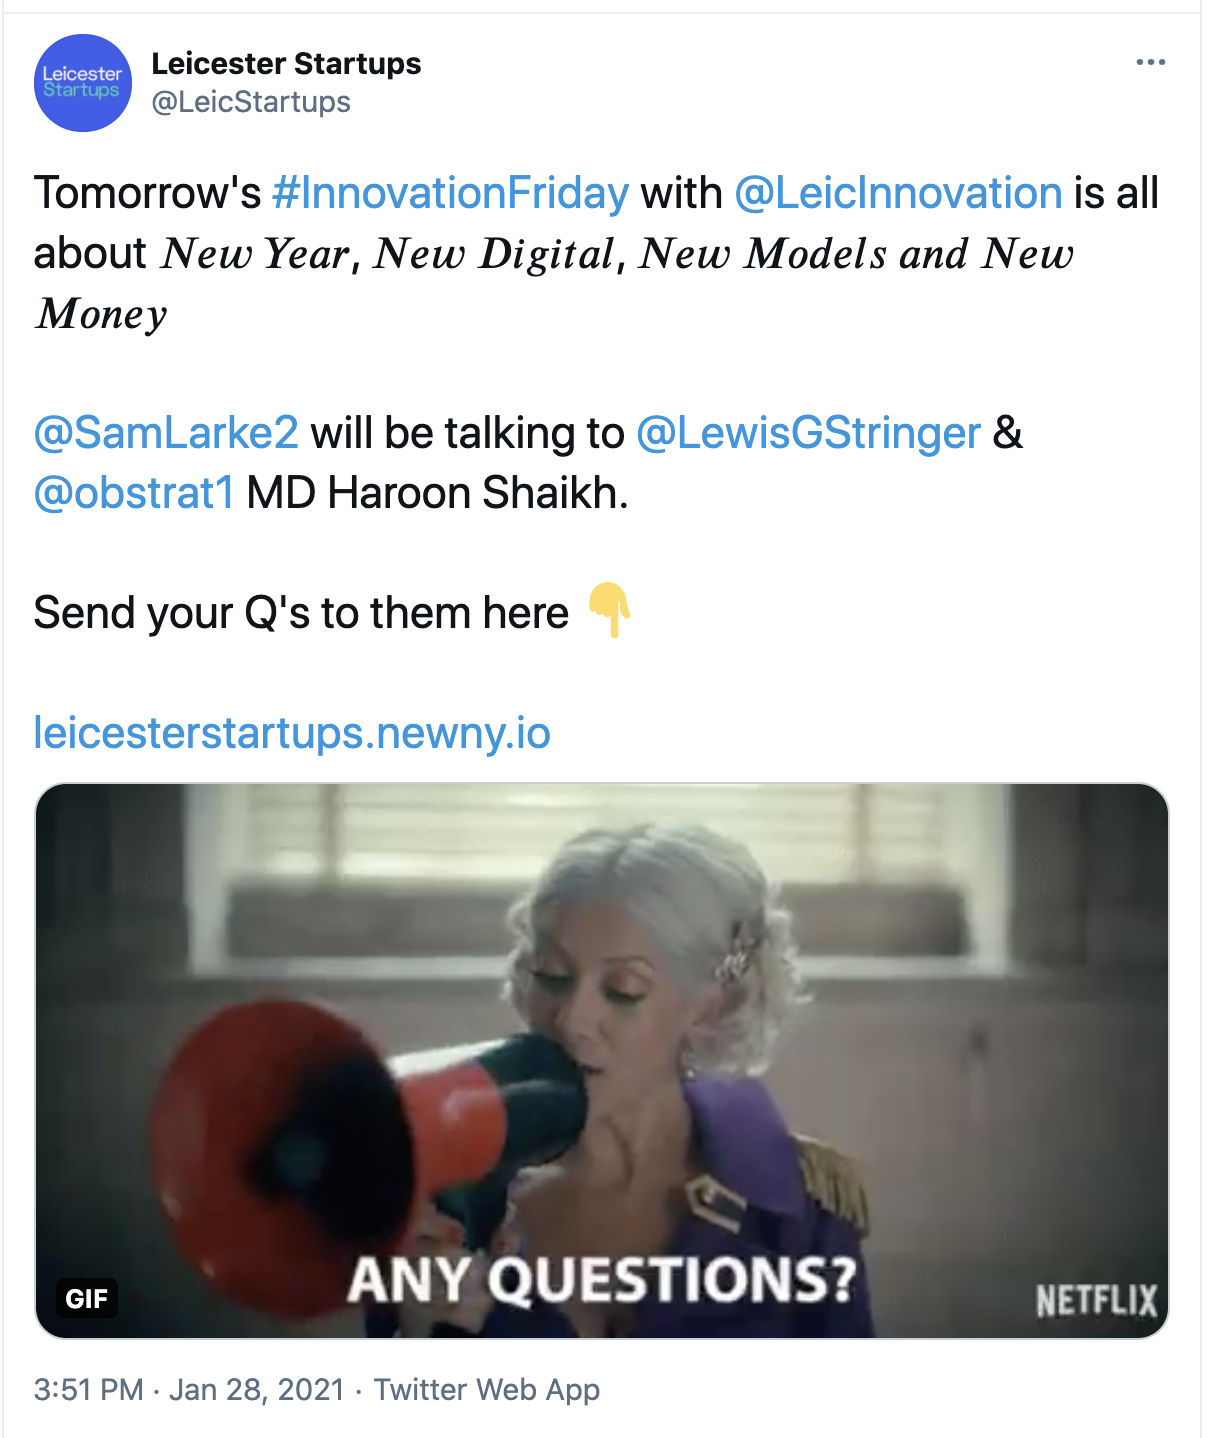 Tweet by Leicester Startups sharing their Newny link